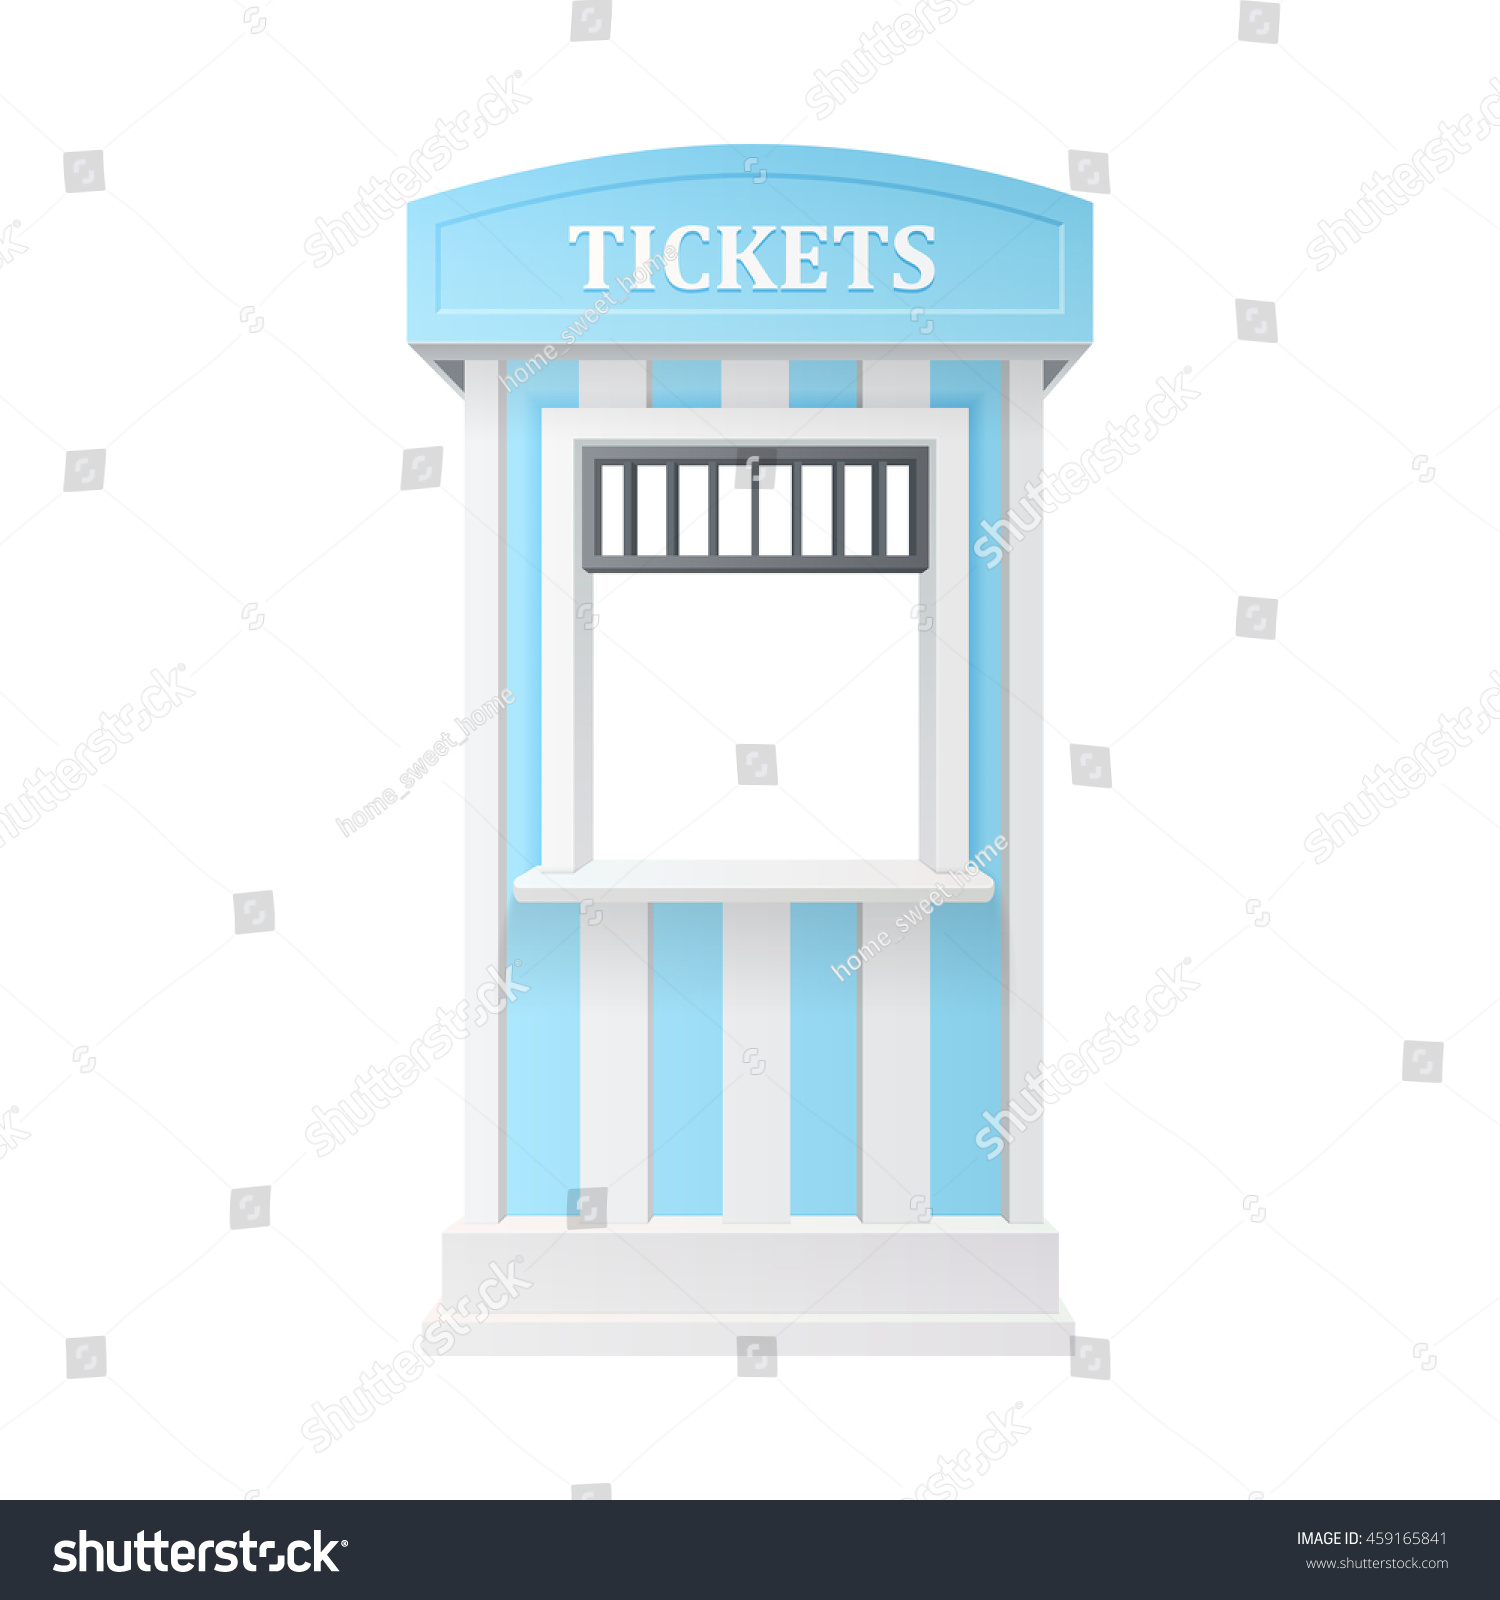 blue striped guard carnival information ticket window booth